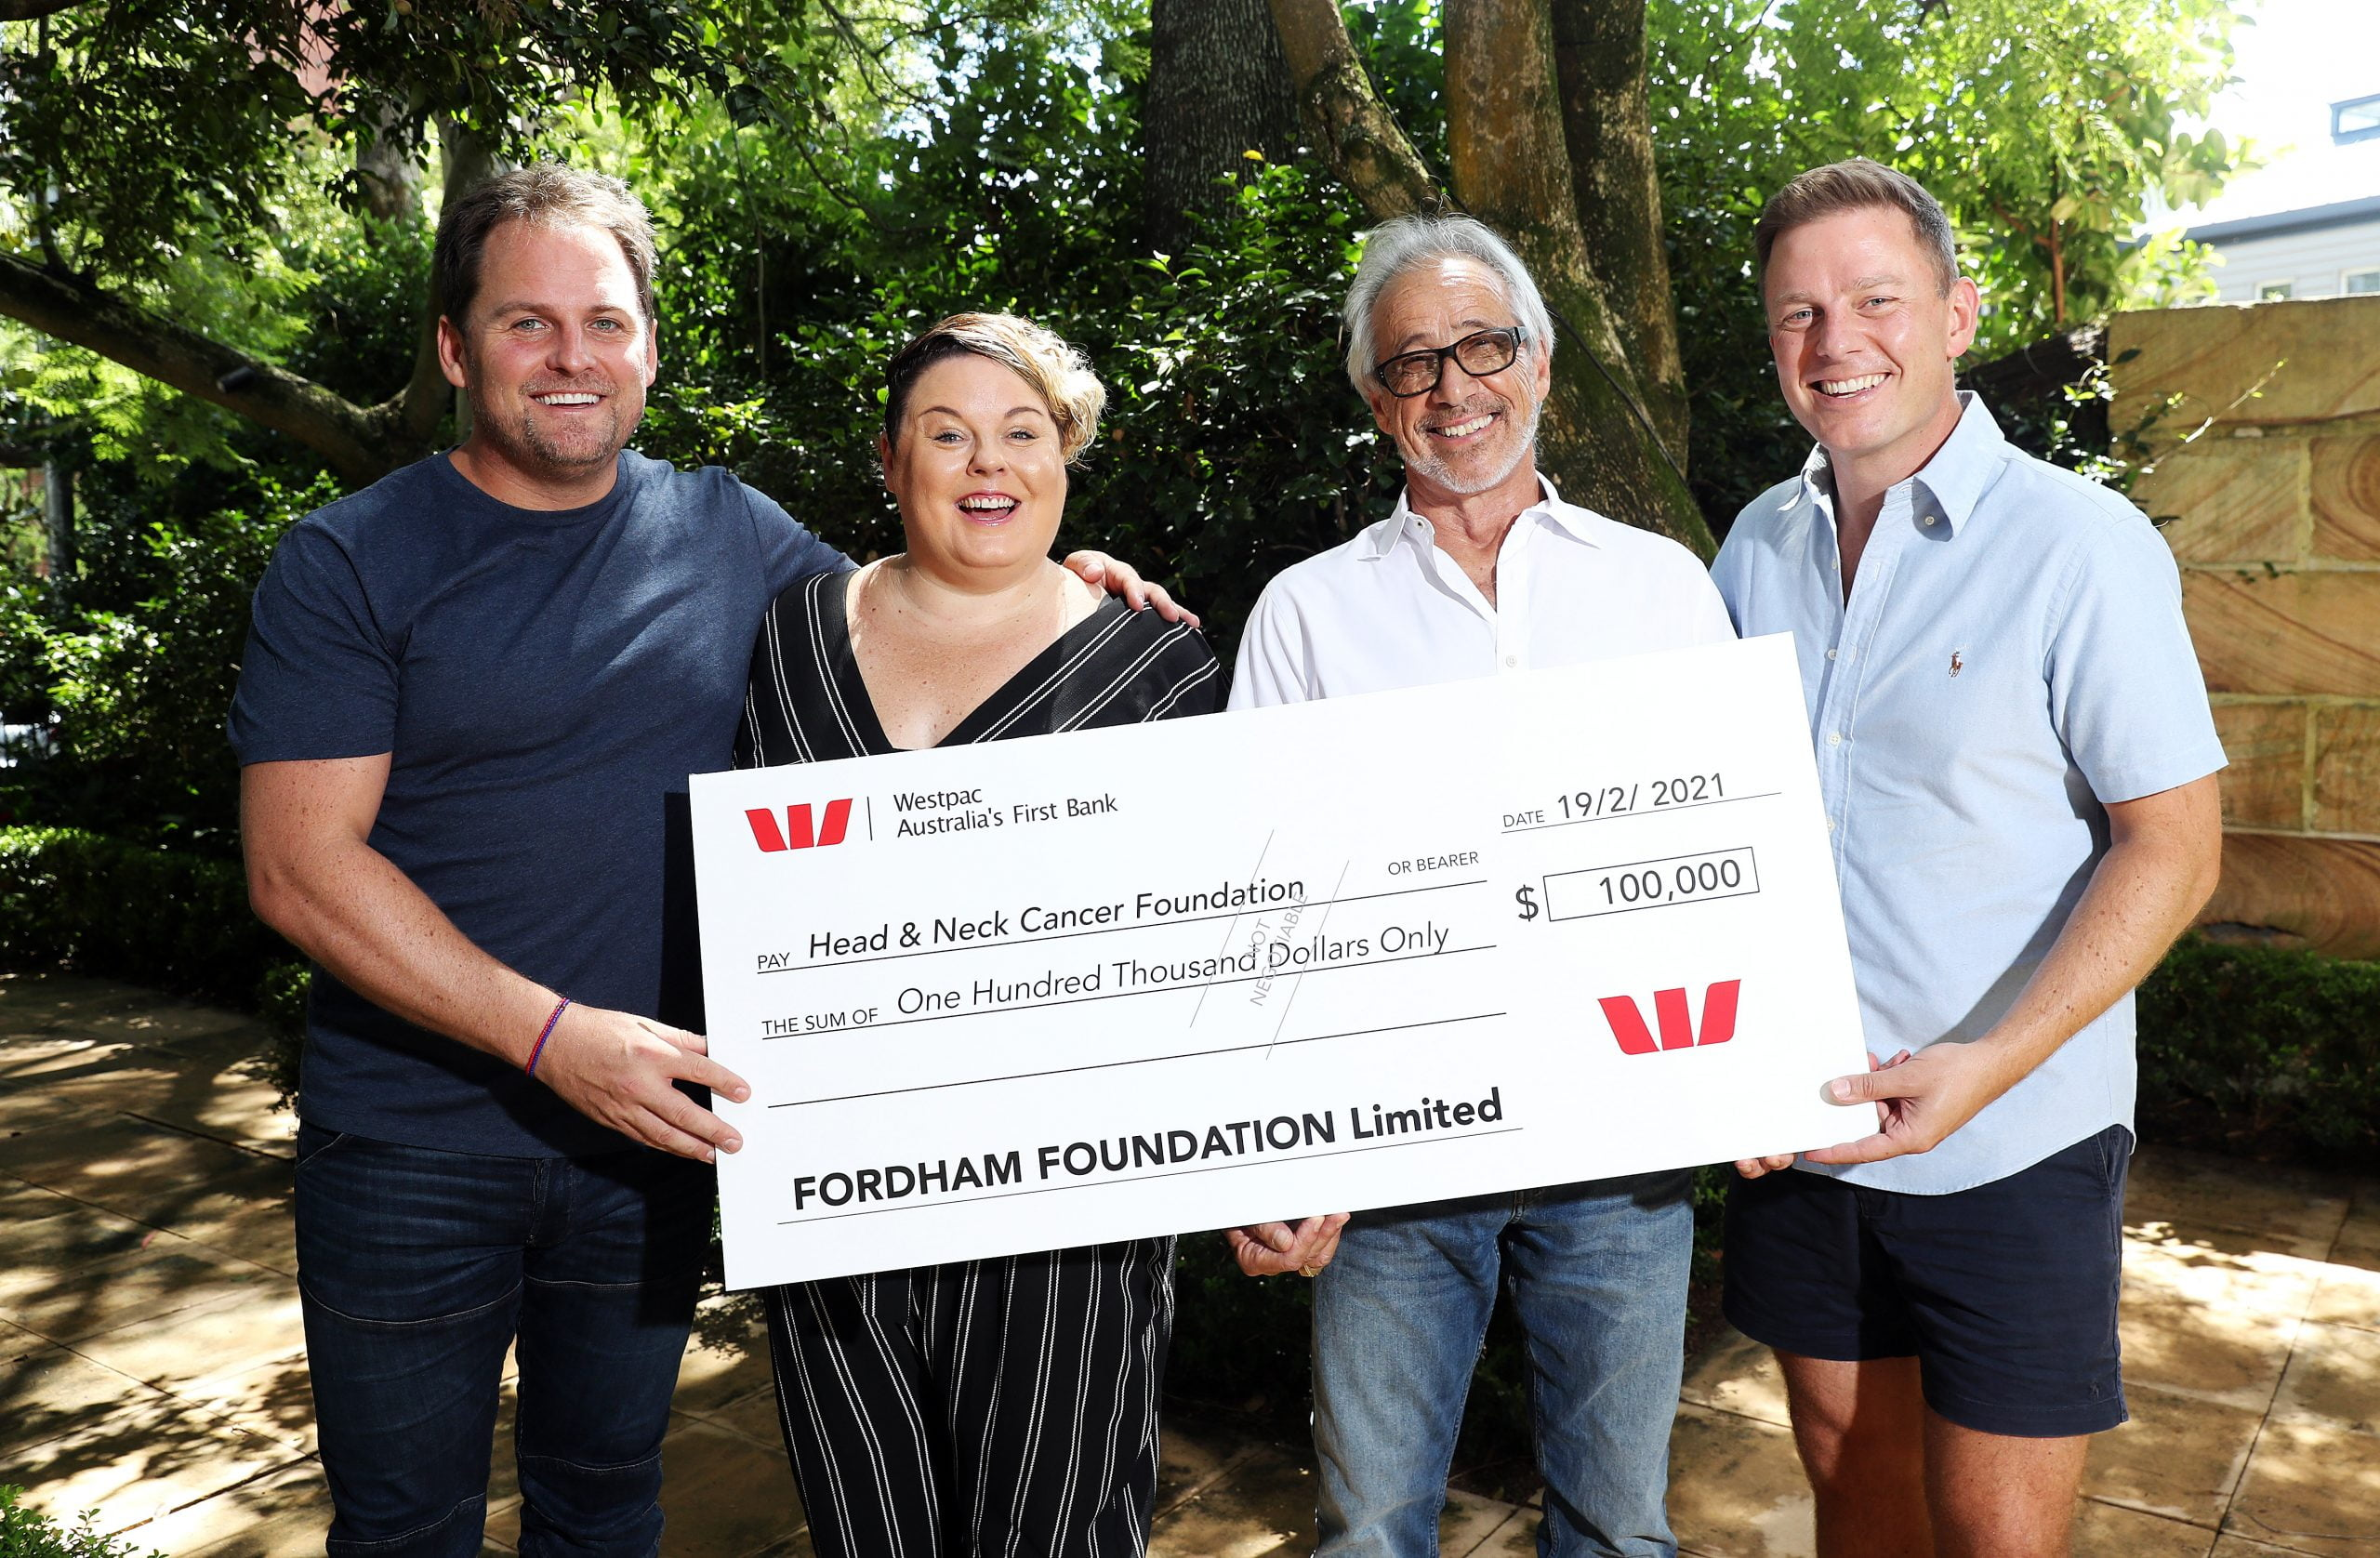 SUNDAY TELEGRAPH - Pictured in Woollahra today is Associate Professor Thomas Havas – Director & Chairman of Head & Neck Cancer Foundation, being presented with a $100,000 cheque by Nick, Ben and Sarah Fordham, raised by the FORDHAM FOUNDATION. Picture: Tim Hunter.